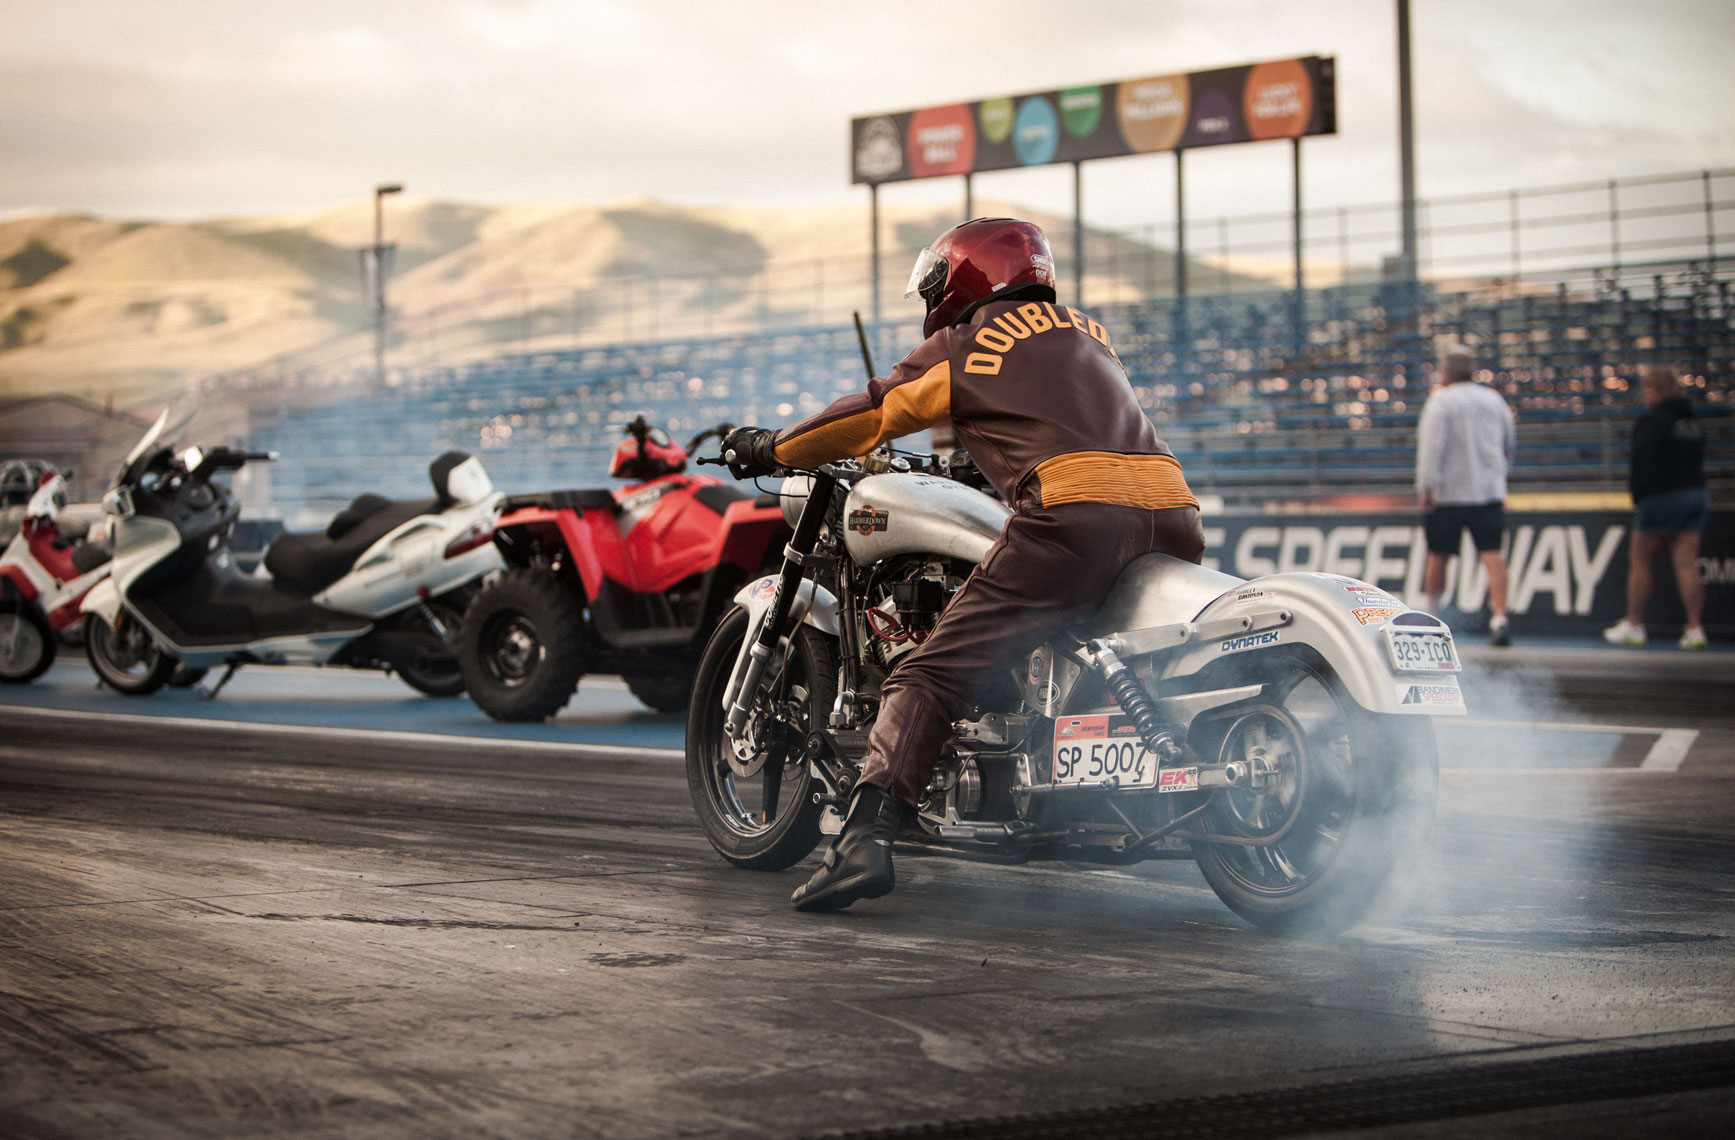 03 Location Photography Dan Schrock Photographer Location Bandimere Speedway Denver Colorado Motorcyle NHRA Dragtrack